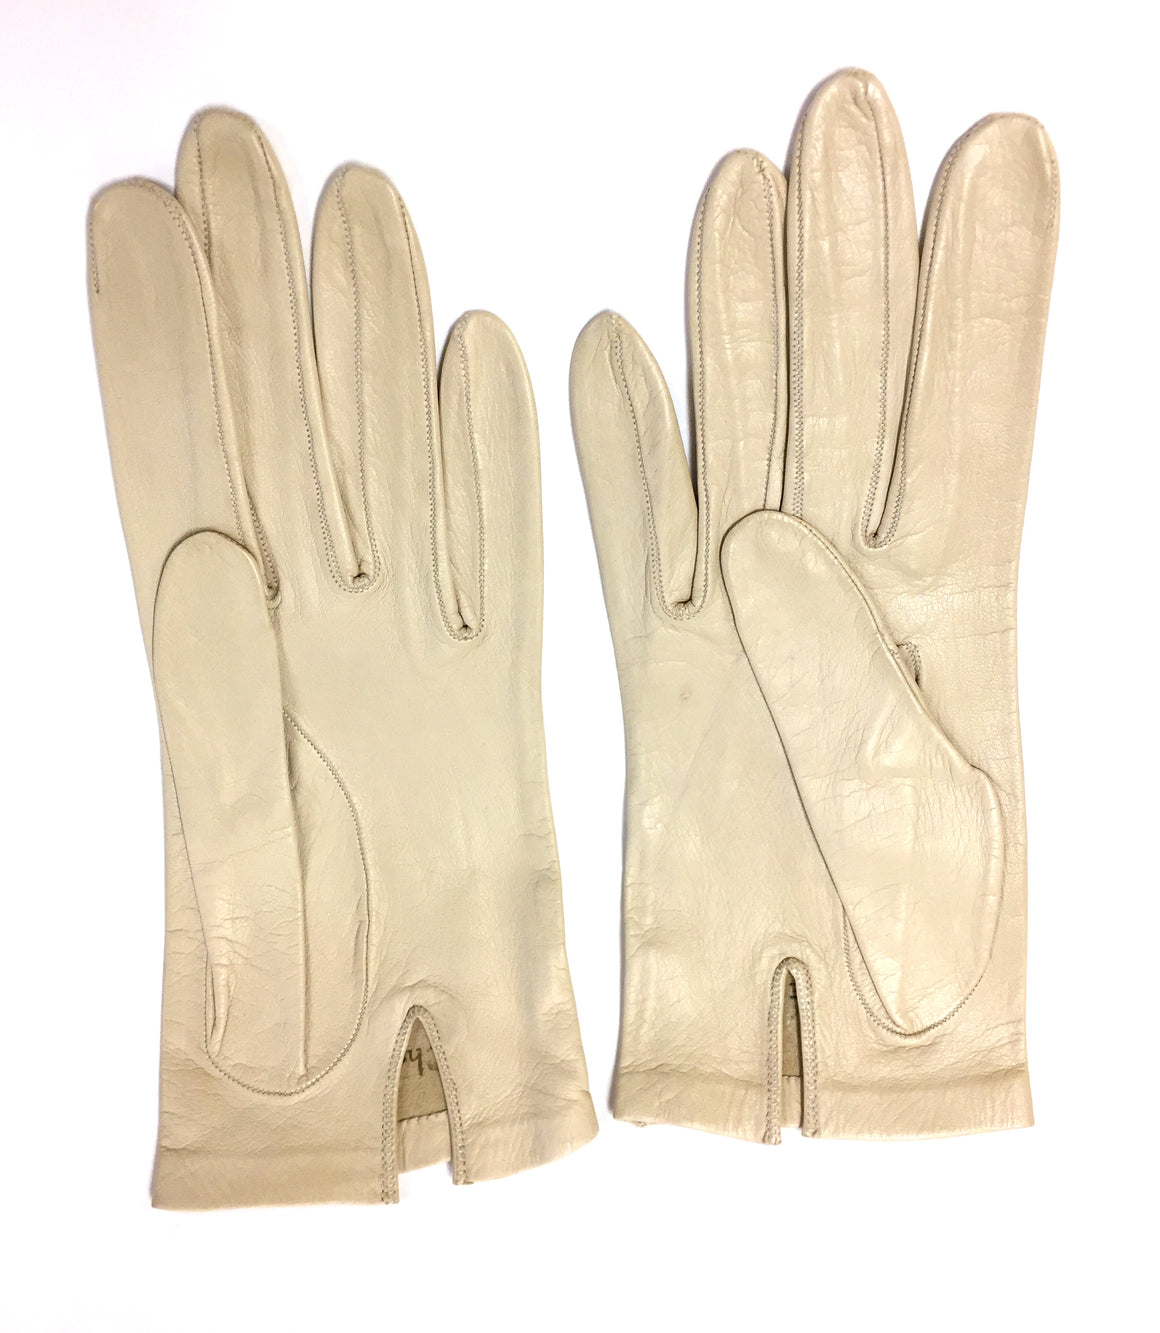 bisbiz.com CHRISTIAN DIOR Vintage Beige Kidskin Leather Wrist Gloves Size: 6.3/4 - Bis Luxury Resale